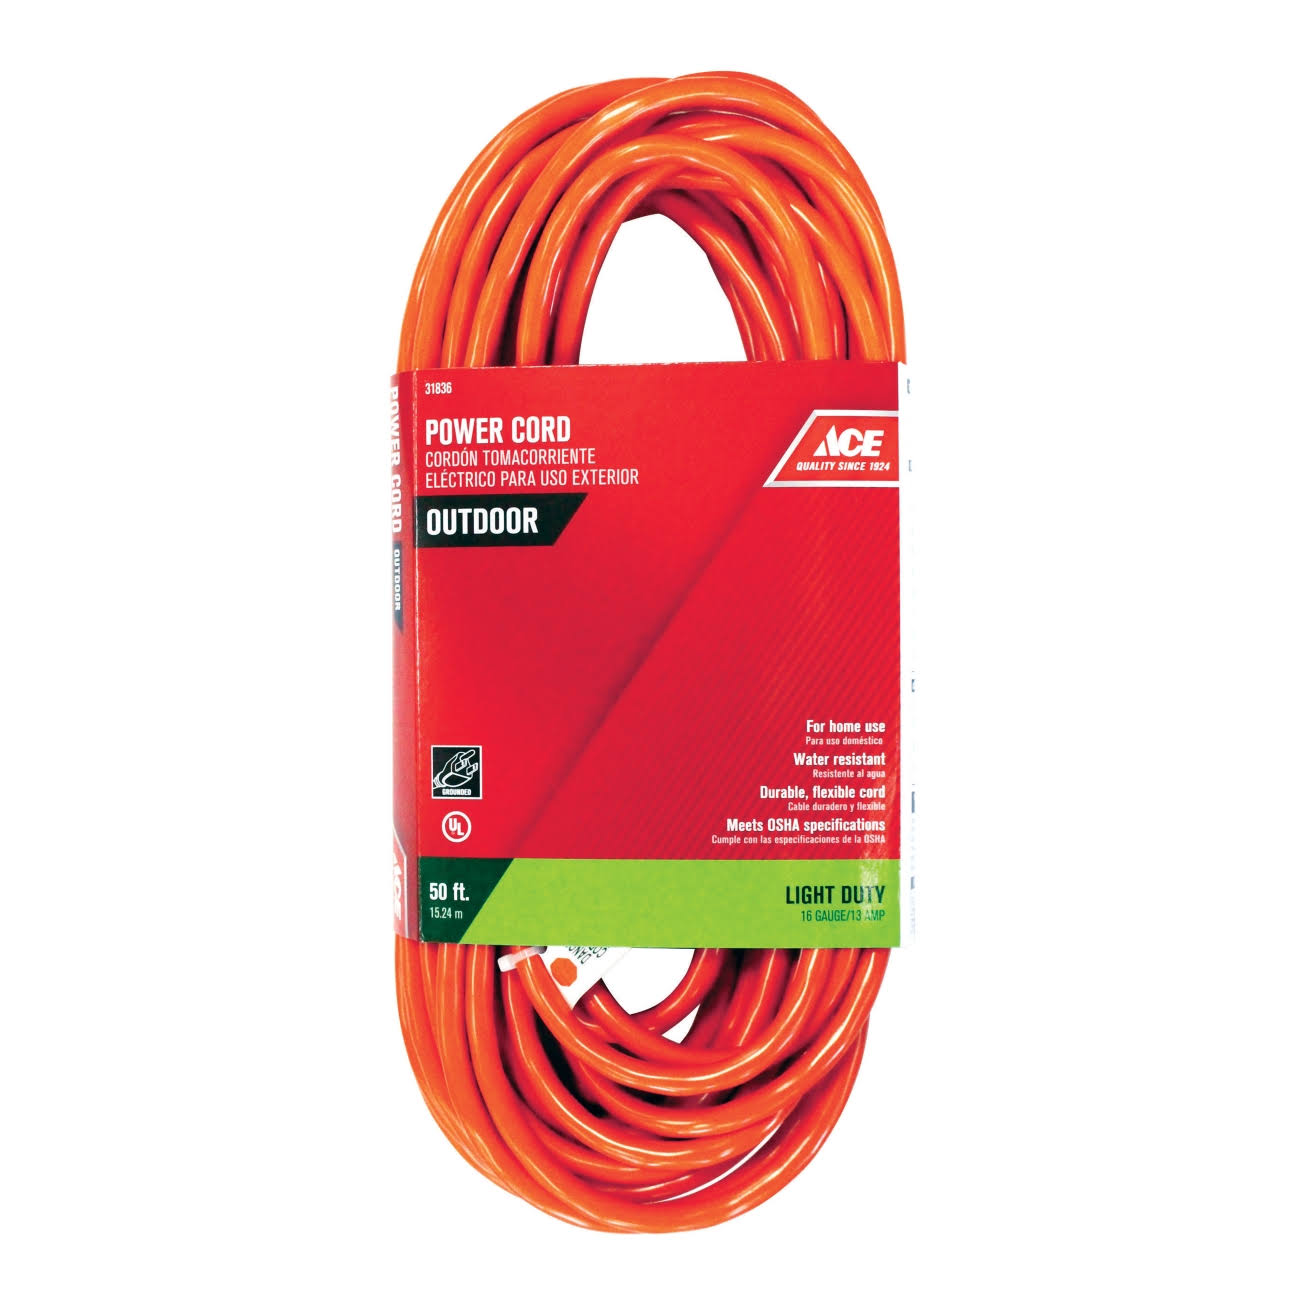 Ace Outdoor Power Extension Cord - 50'